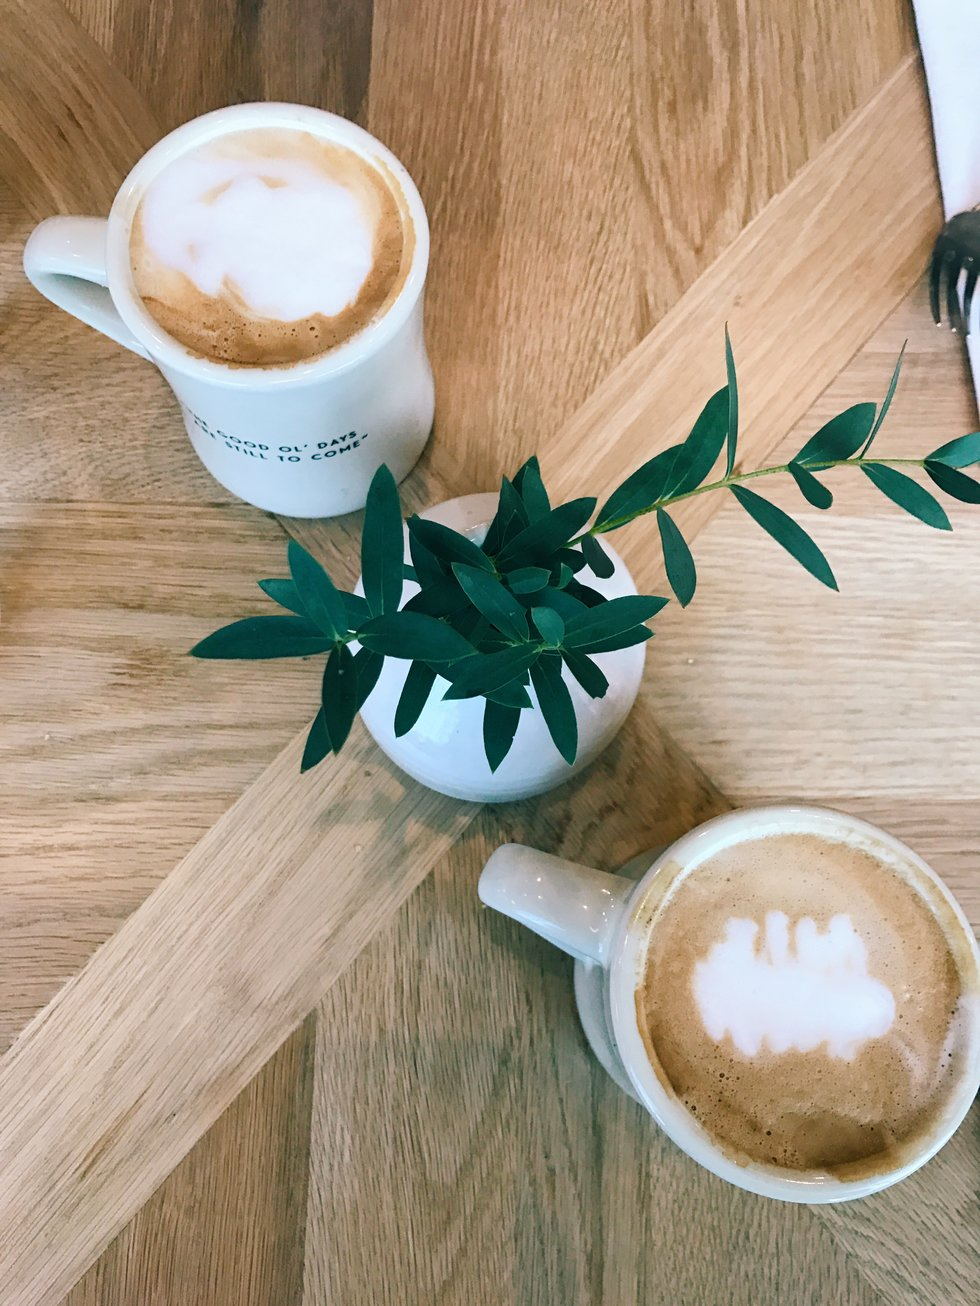 My friend and I started off our time at Magnolia Table with lavender lattes.